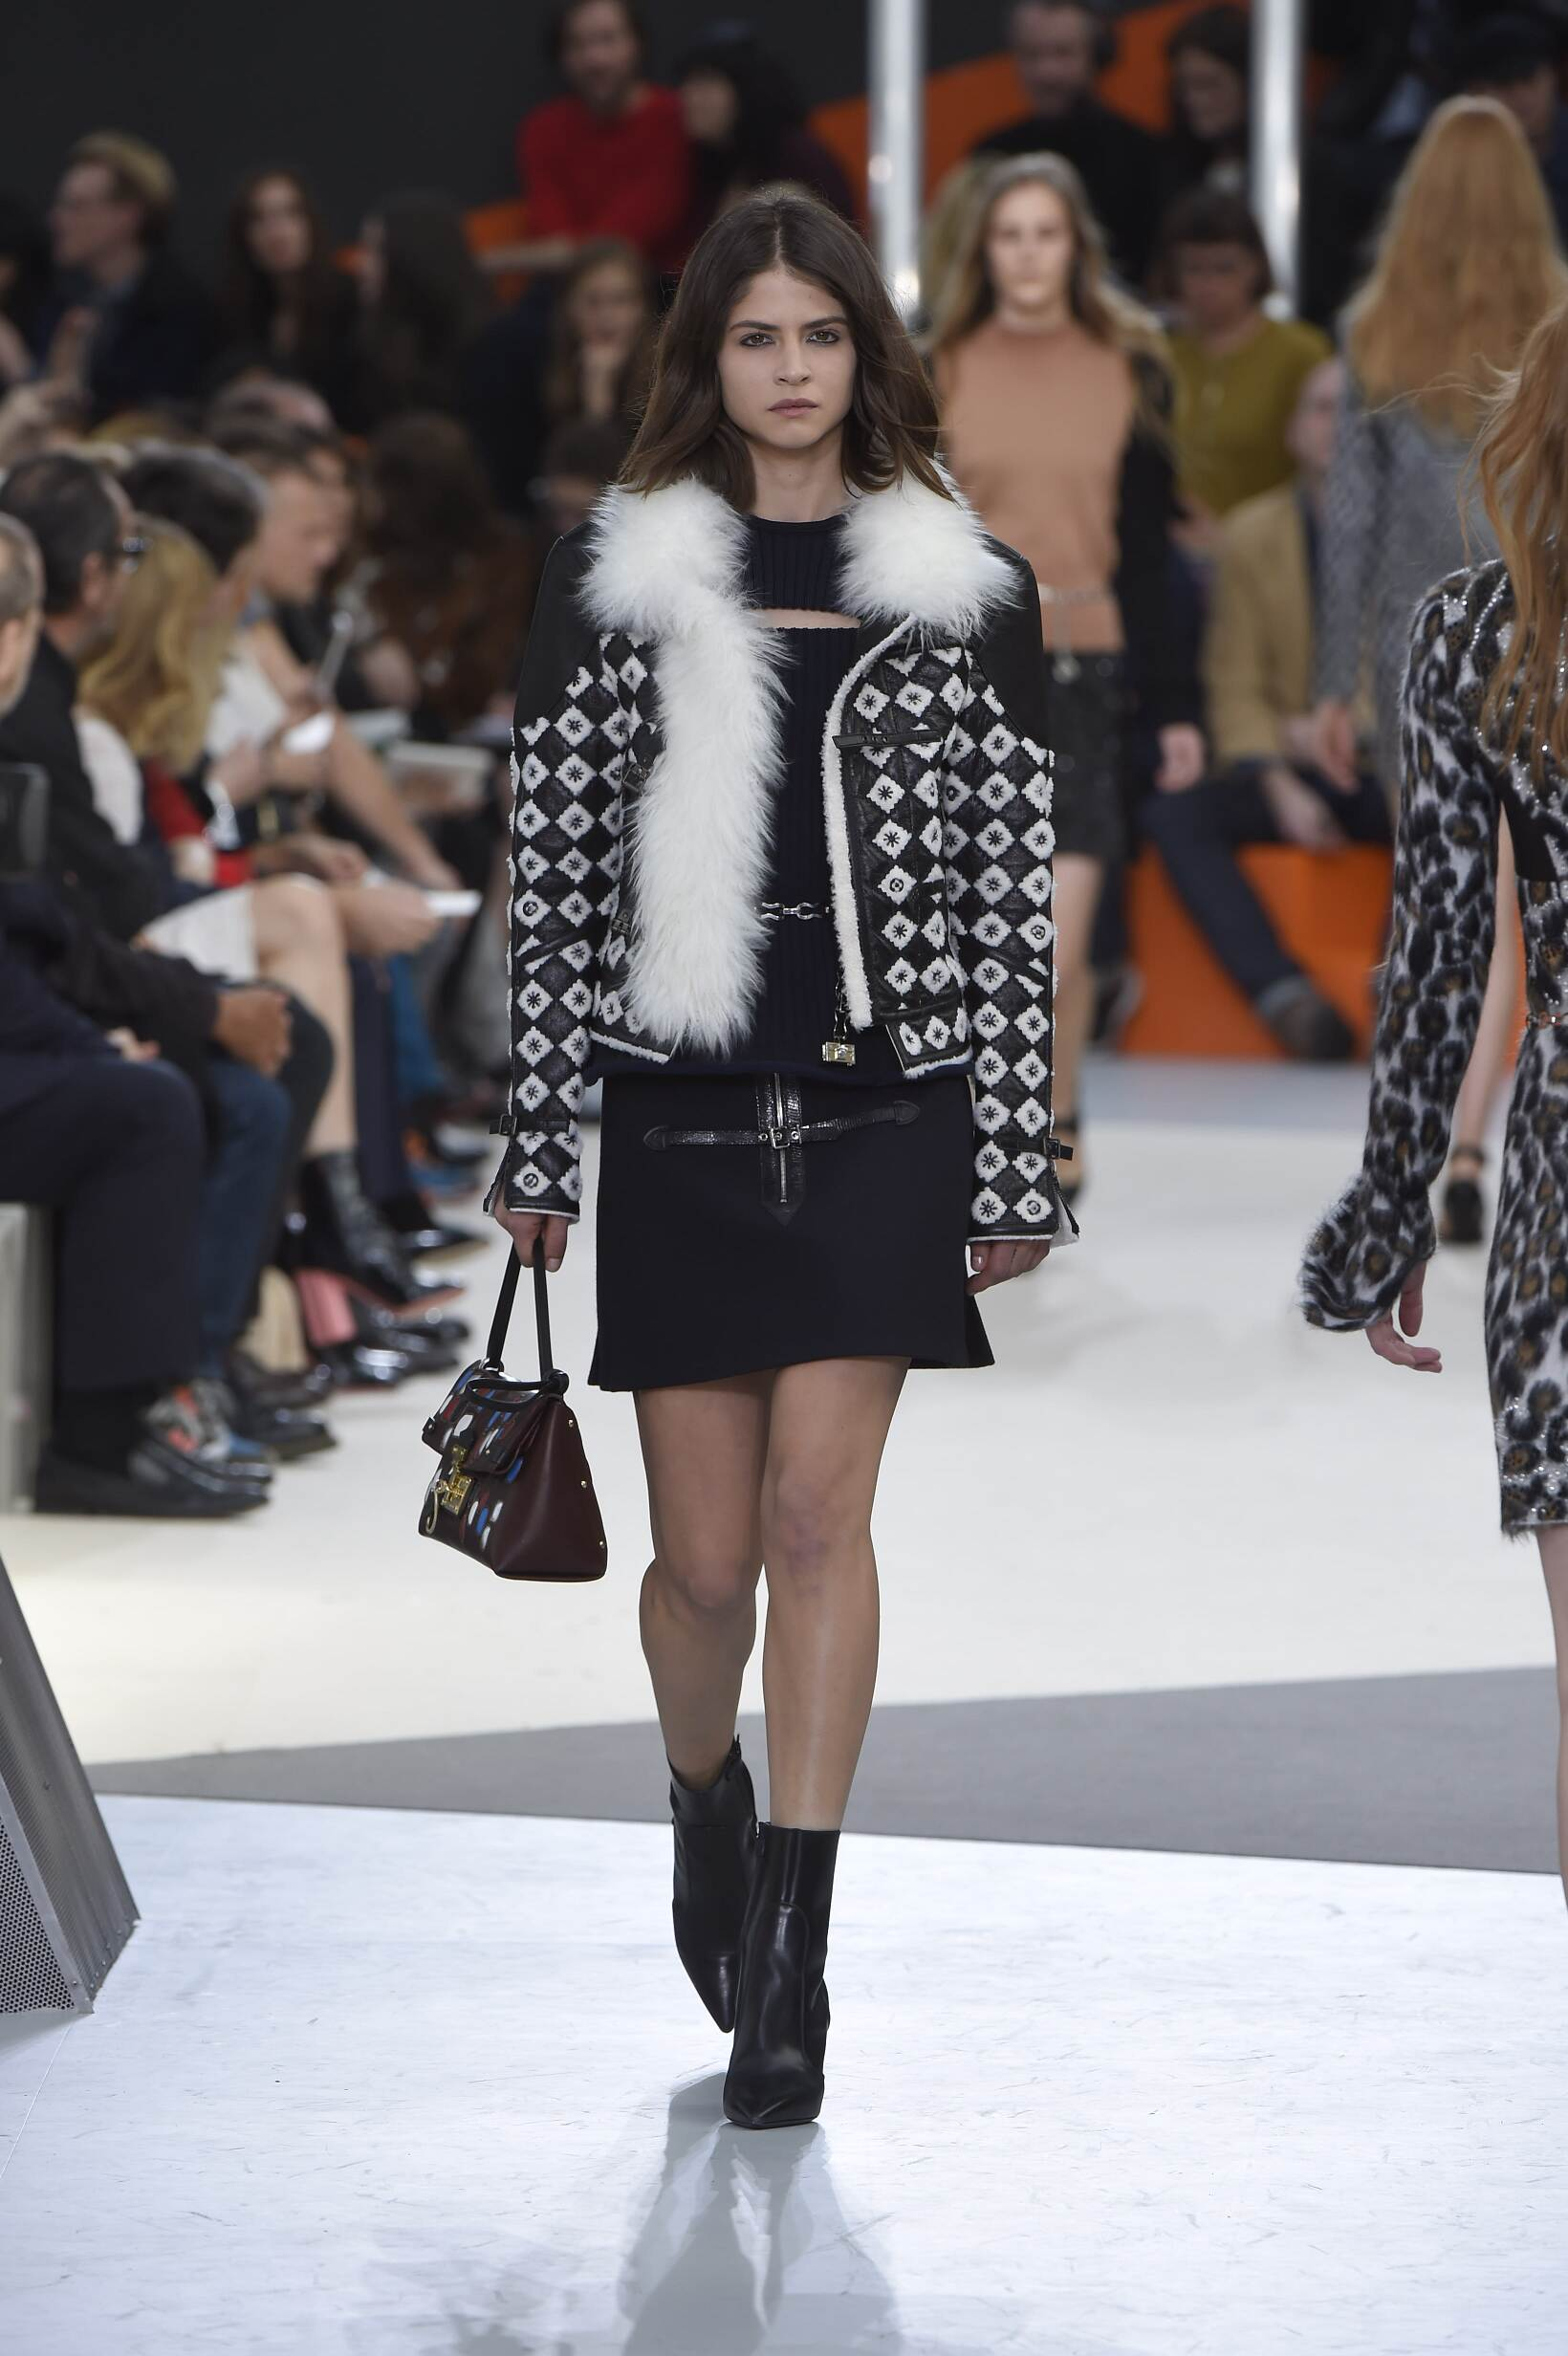 Louis Vuitton Collection Winter 2015 Catwalk